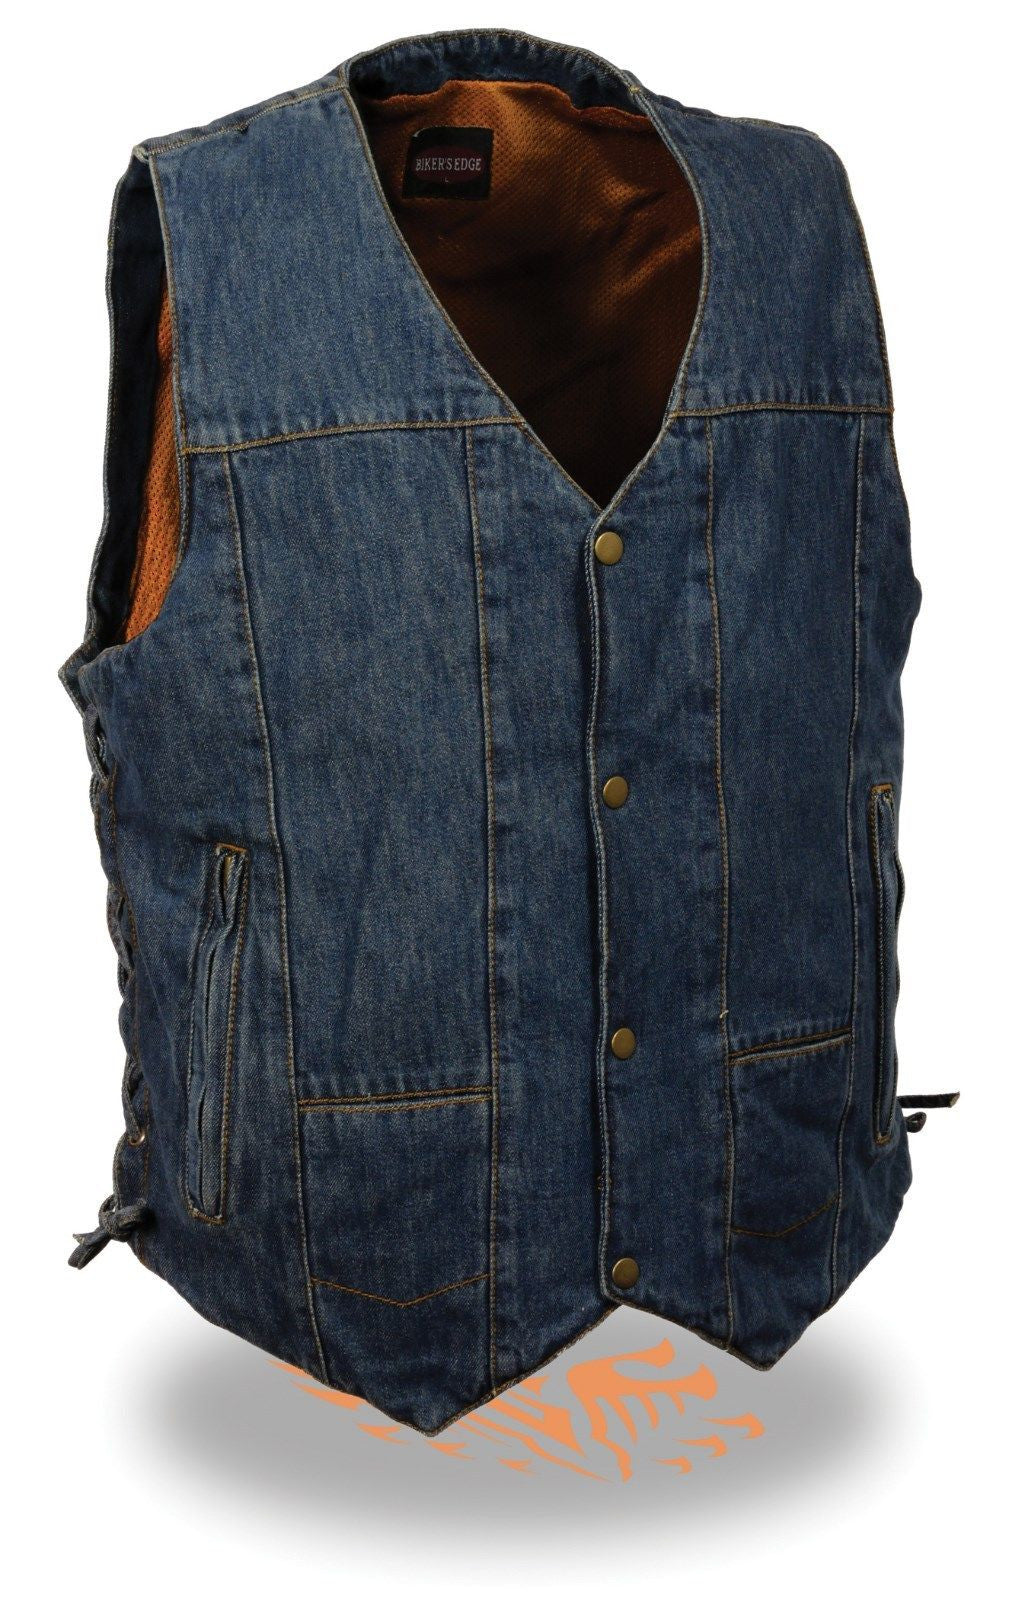 8 POCKETS BLUE DENIM COTTON BIKER VEST SIDE LACES